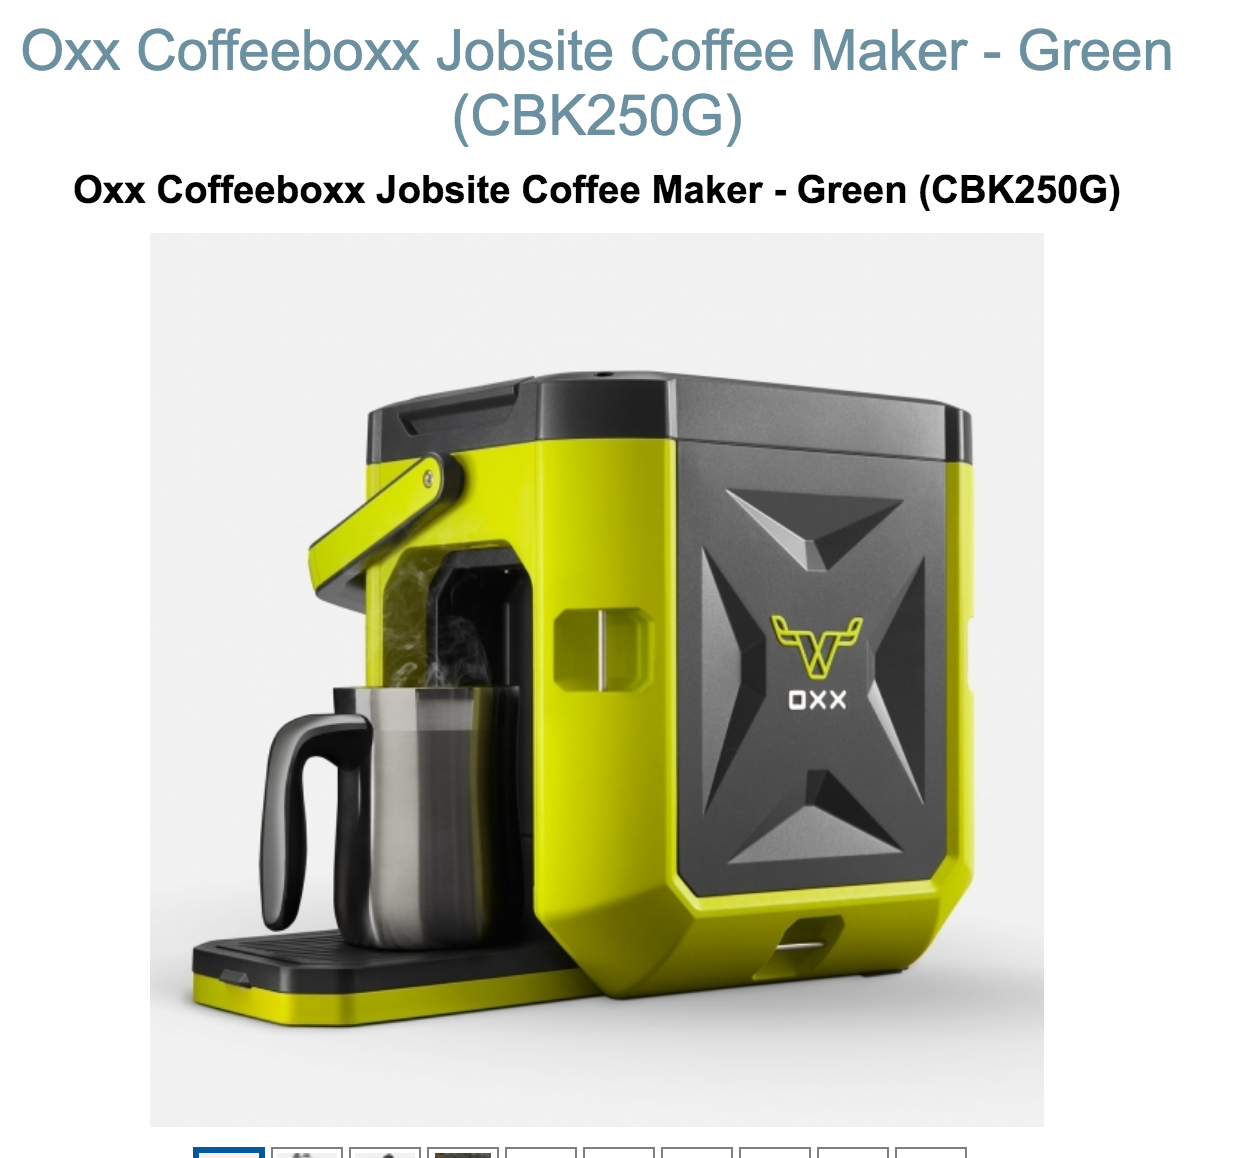 Electric Coffee Maker Wattage : Thoughts on inverter. - Accessories and Modifications - Ford Transit Connect Forum